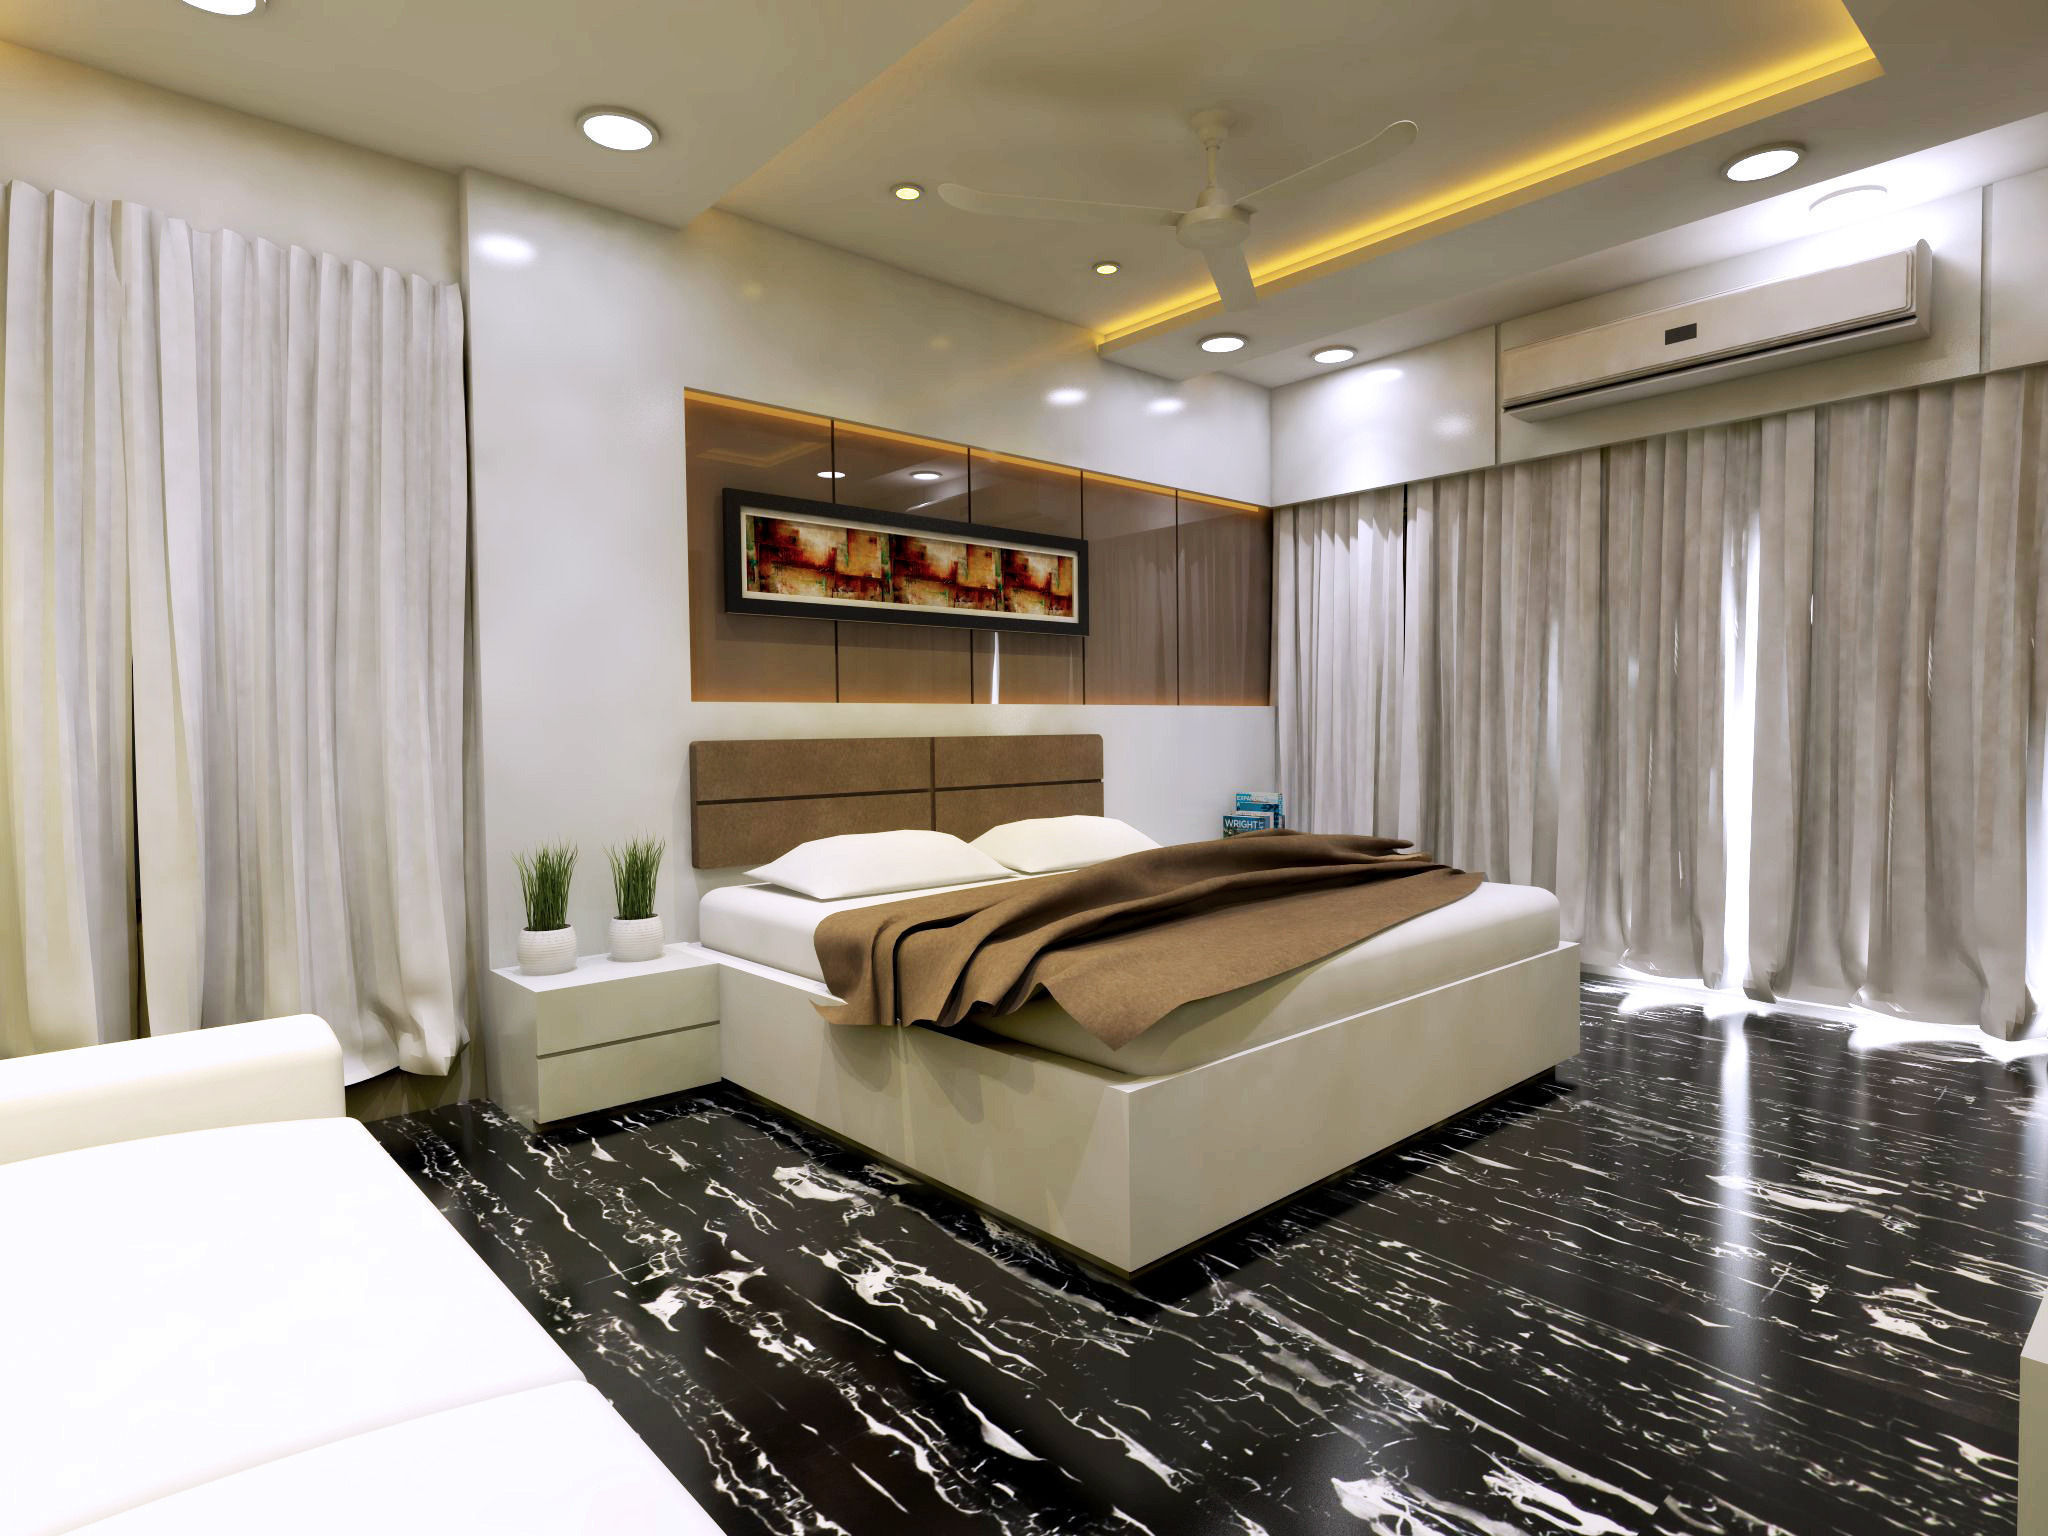 modern bedroom interior vray rendered 3d model skp